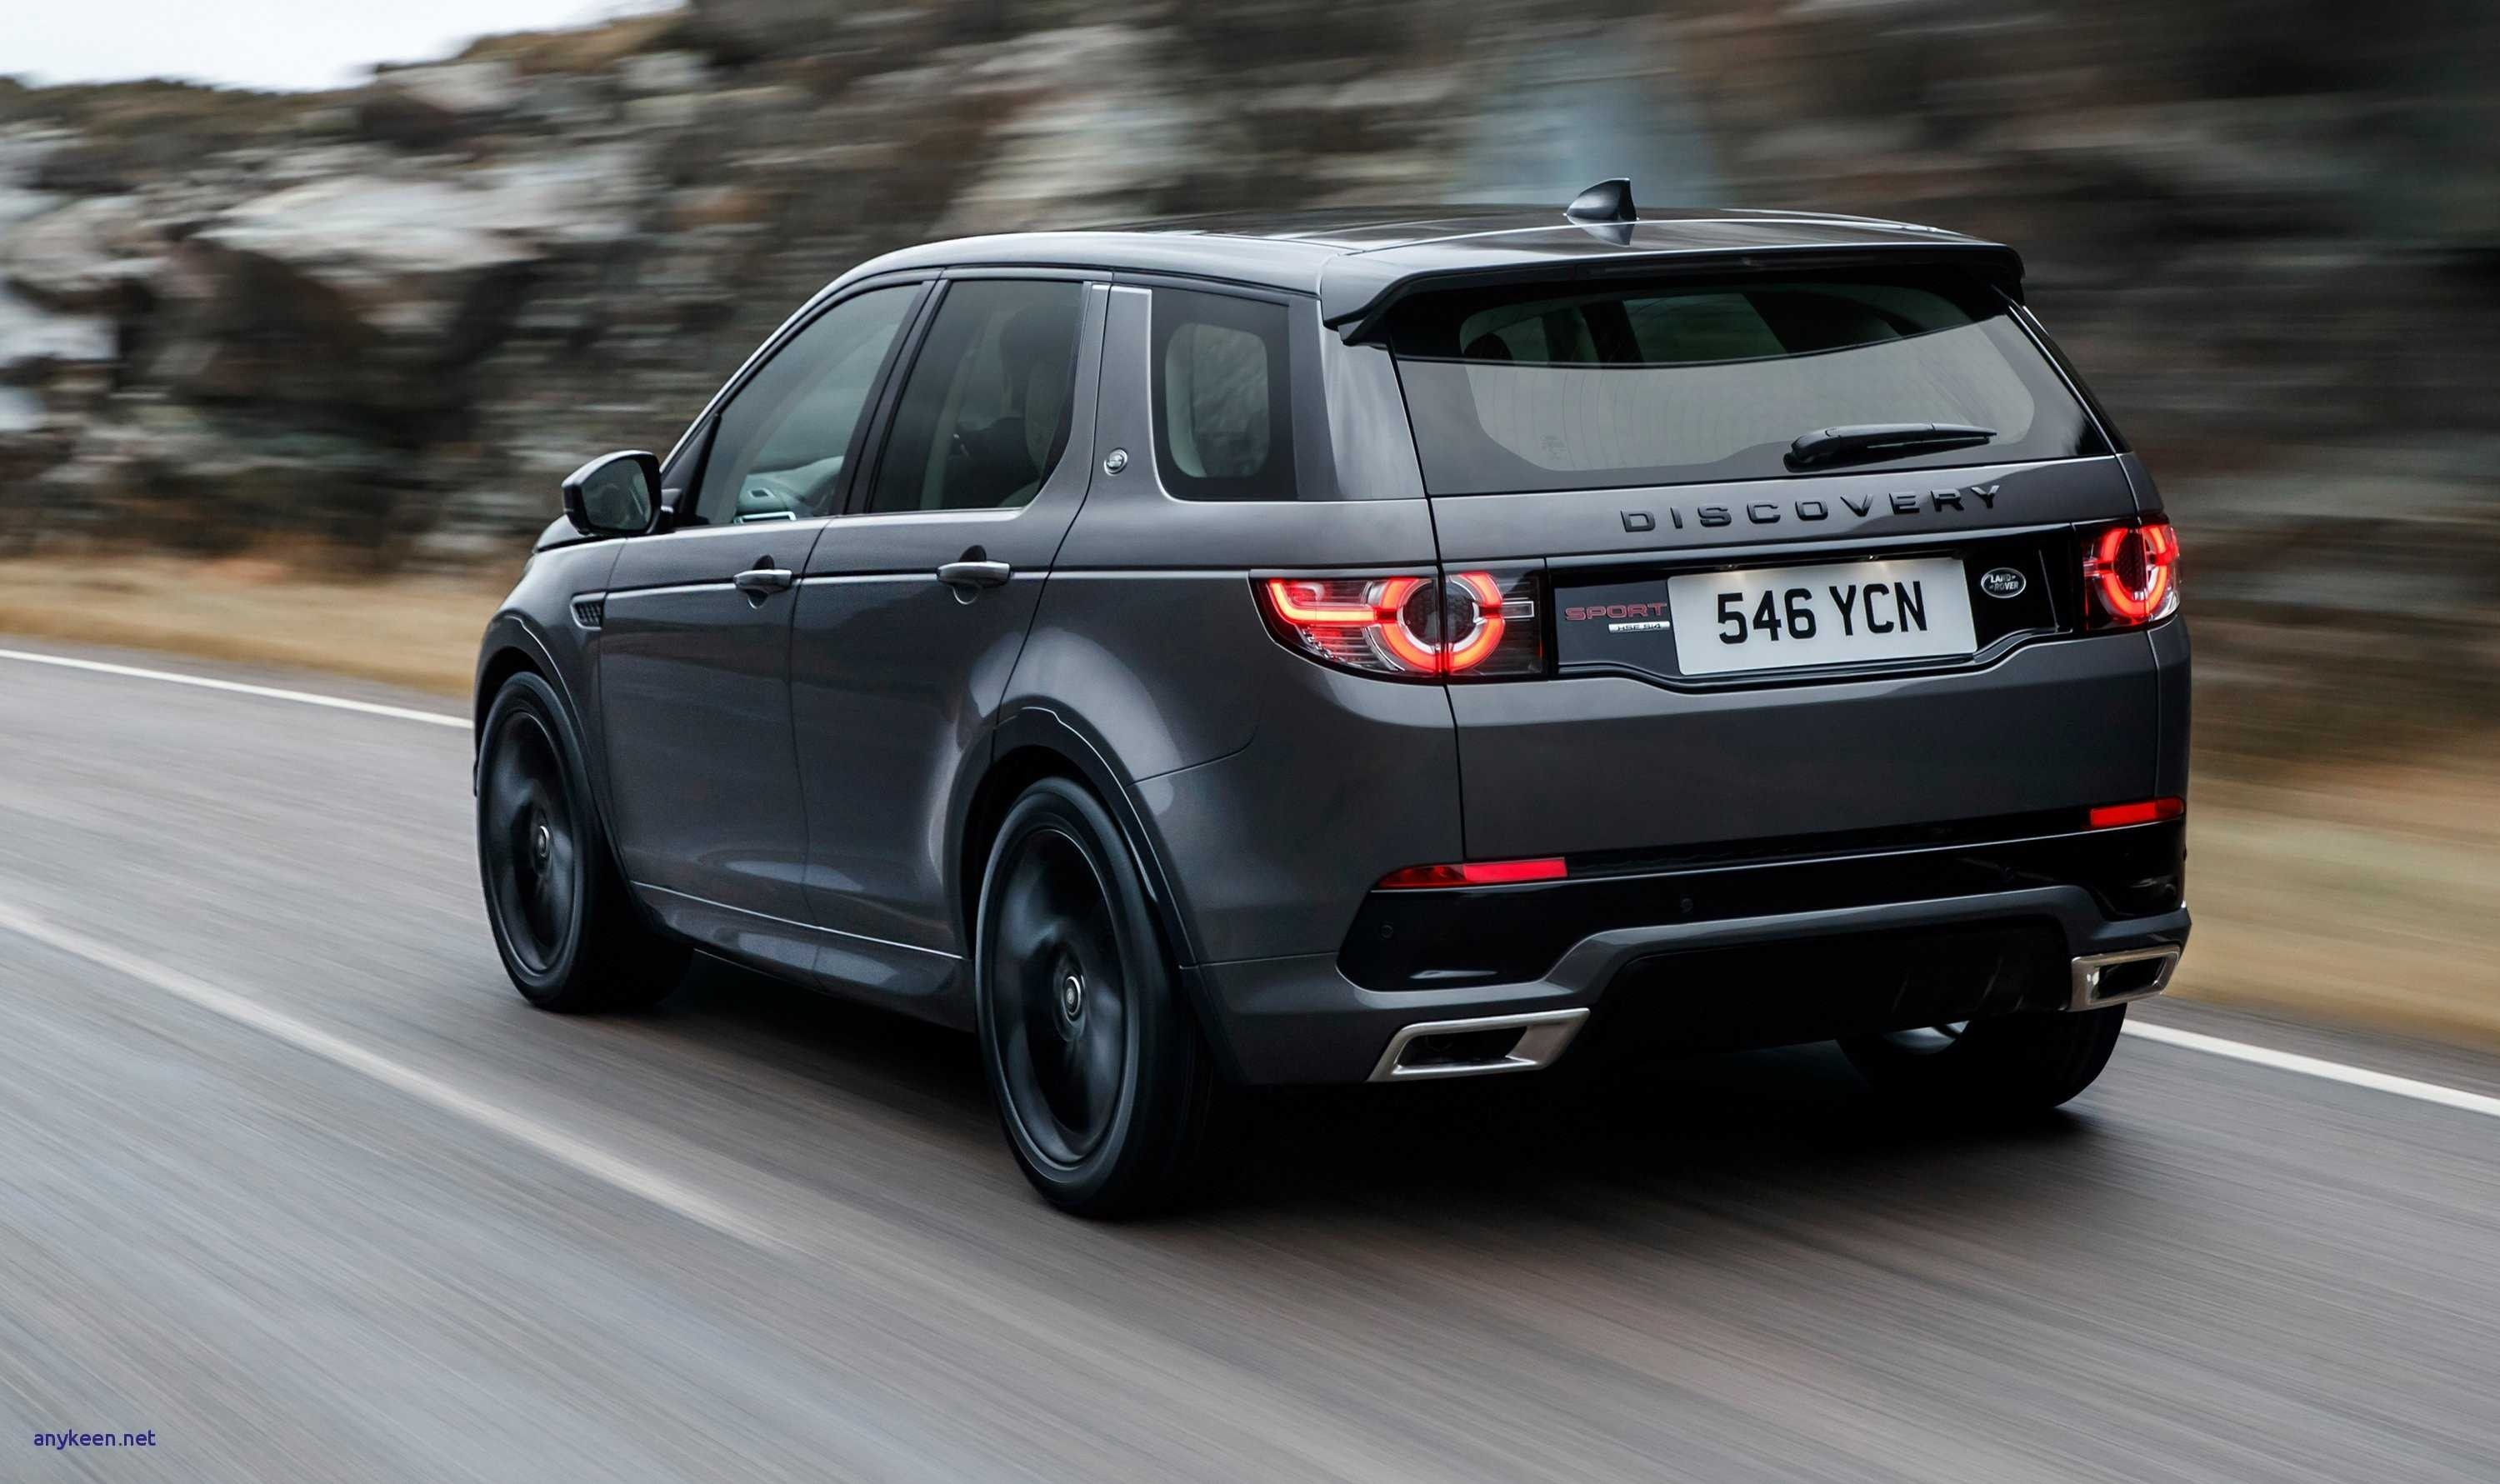 2019 Land Rover Lr4 Redesign Price And Review Land Rover Discovery Sport Land Rover Land Rover Discovery